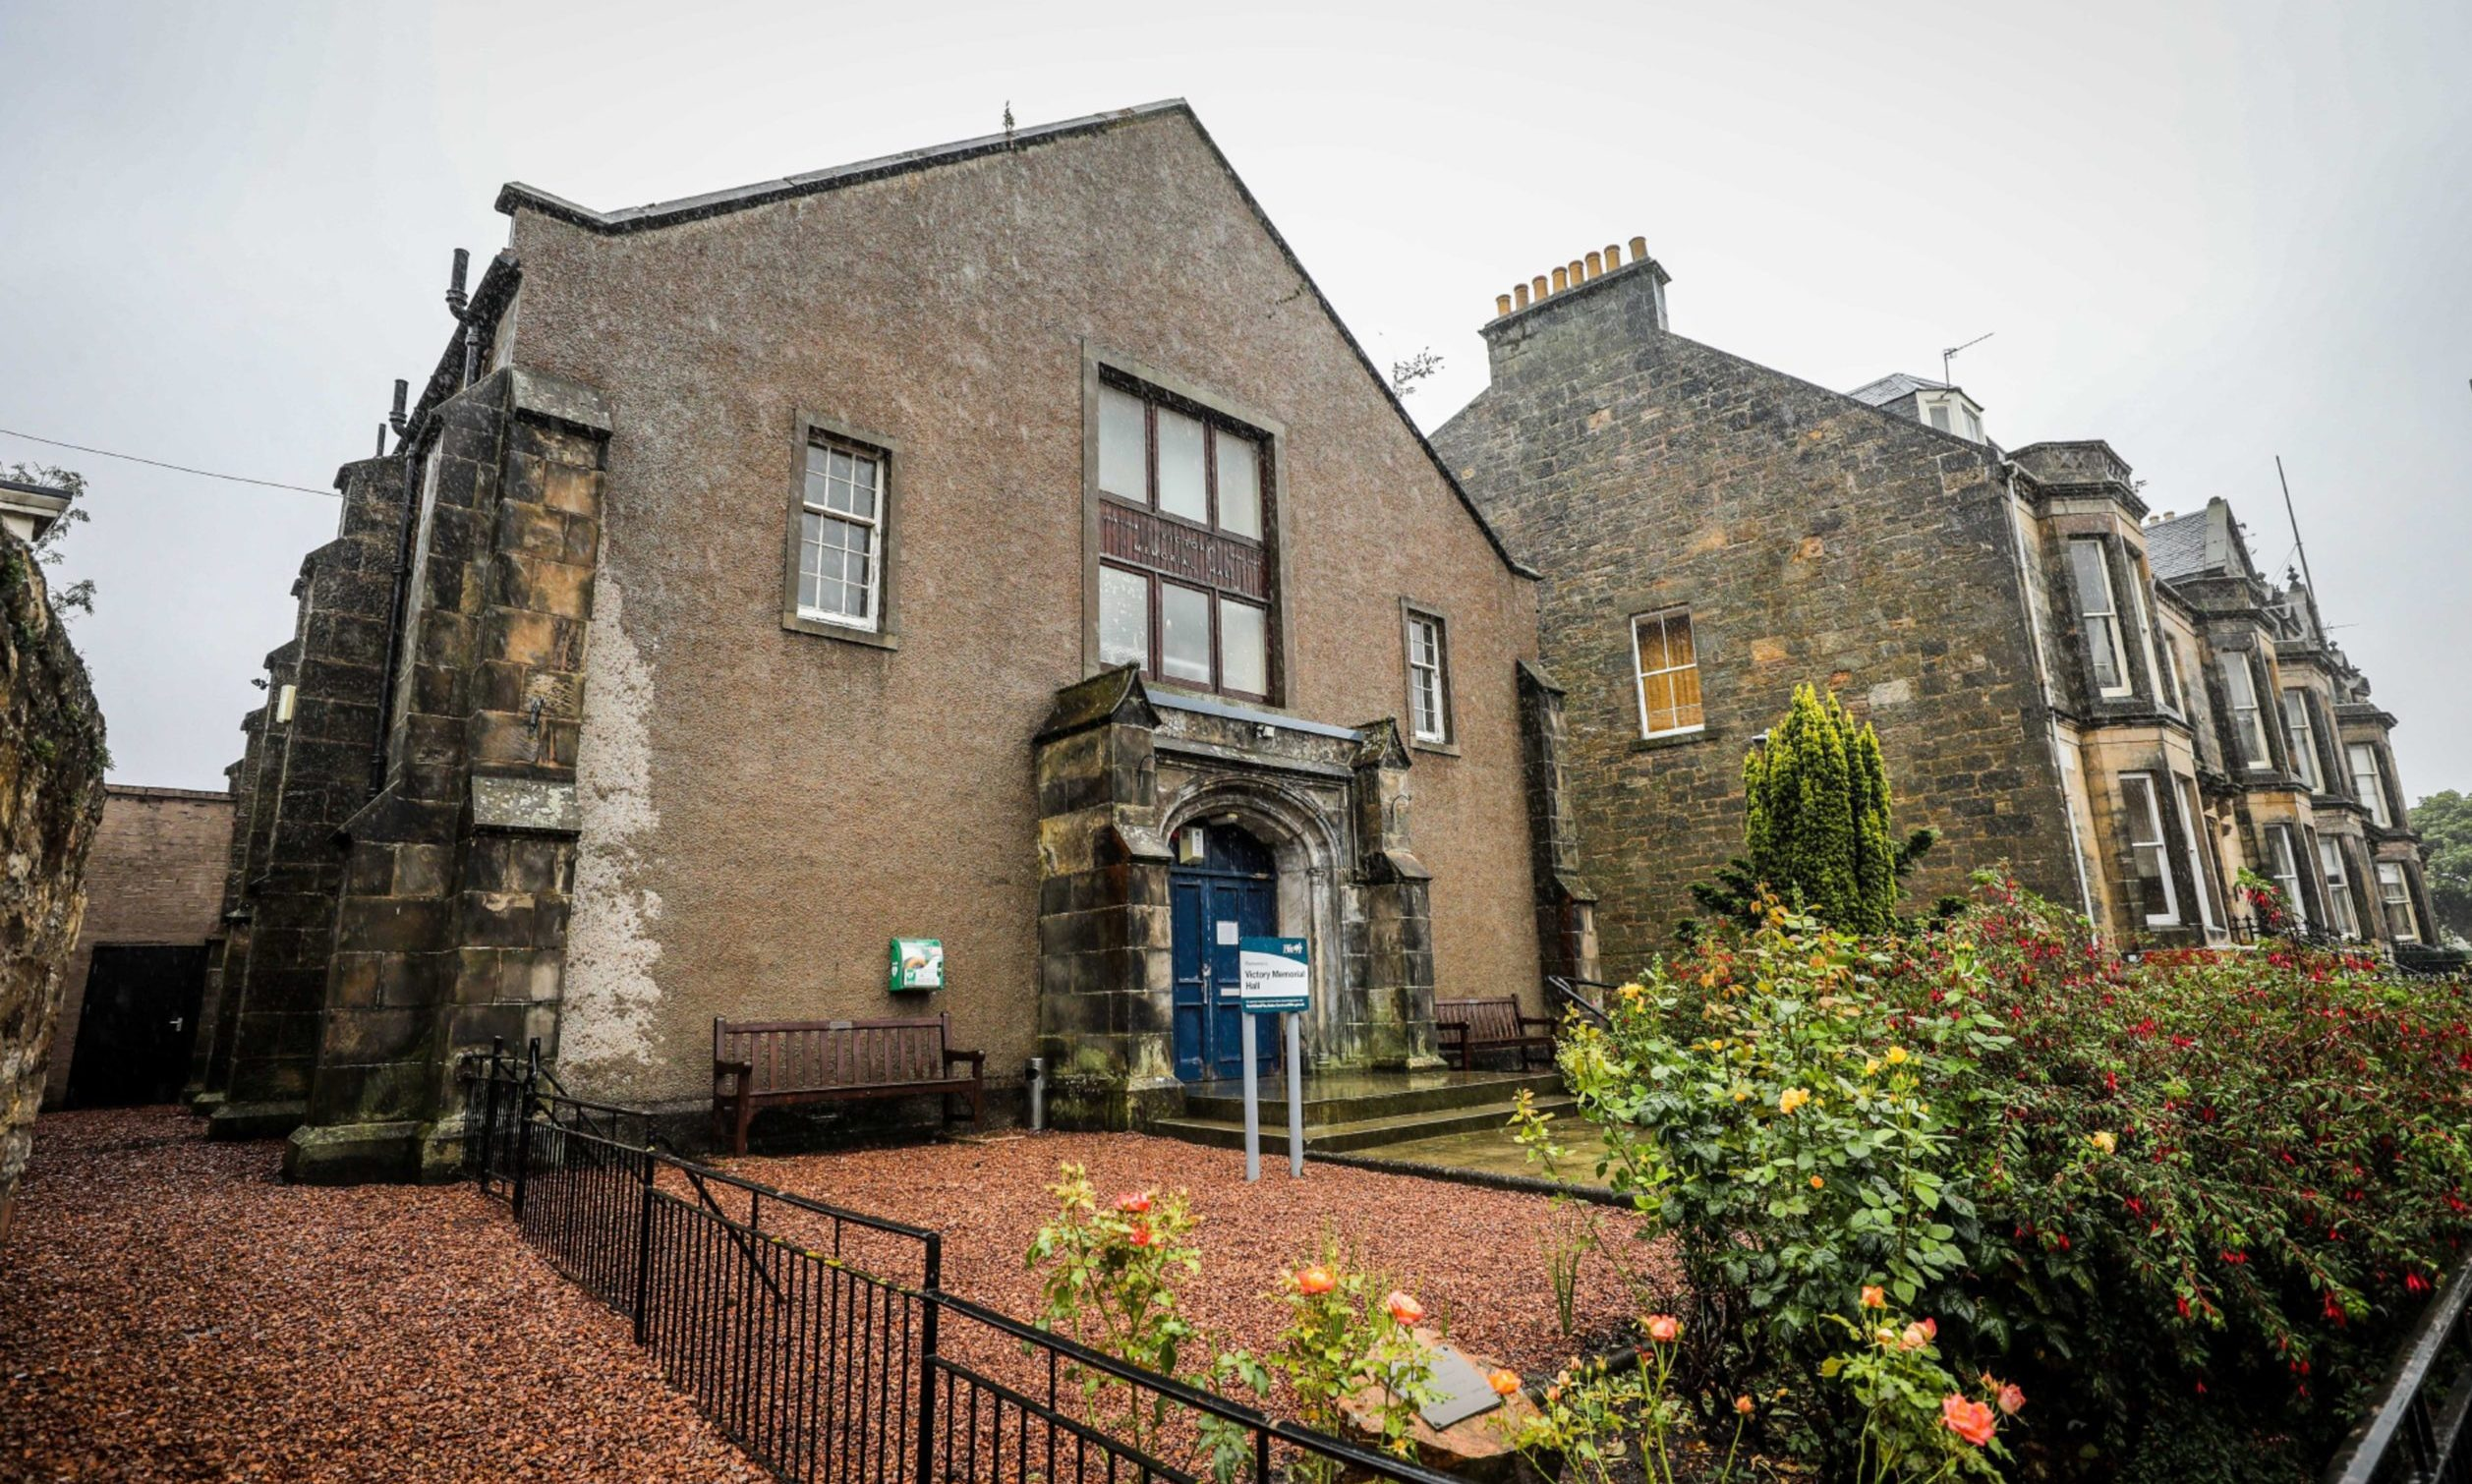 St Andrews has been named as the first location for a walk-in test centre in Scotland.